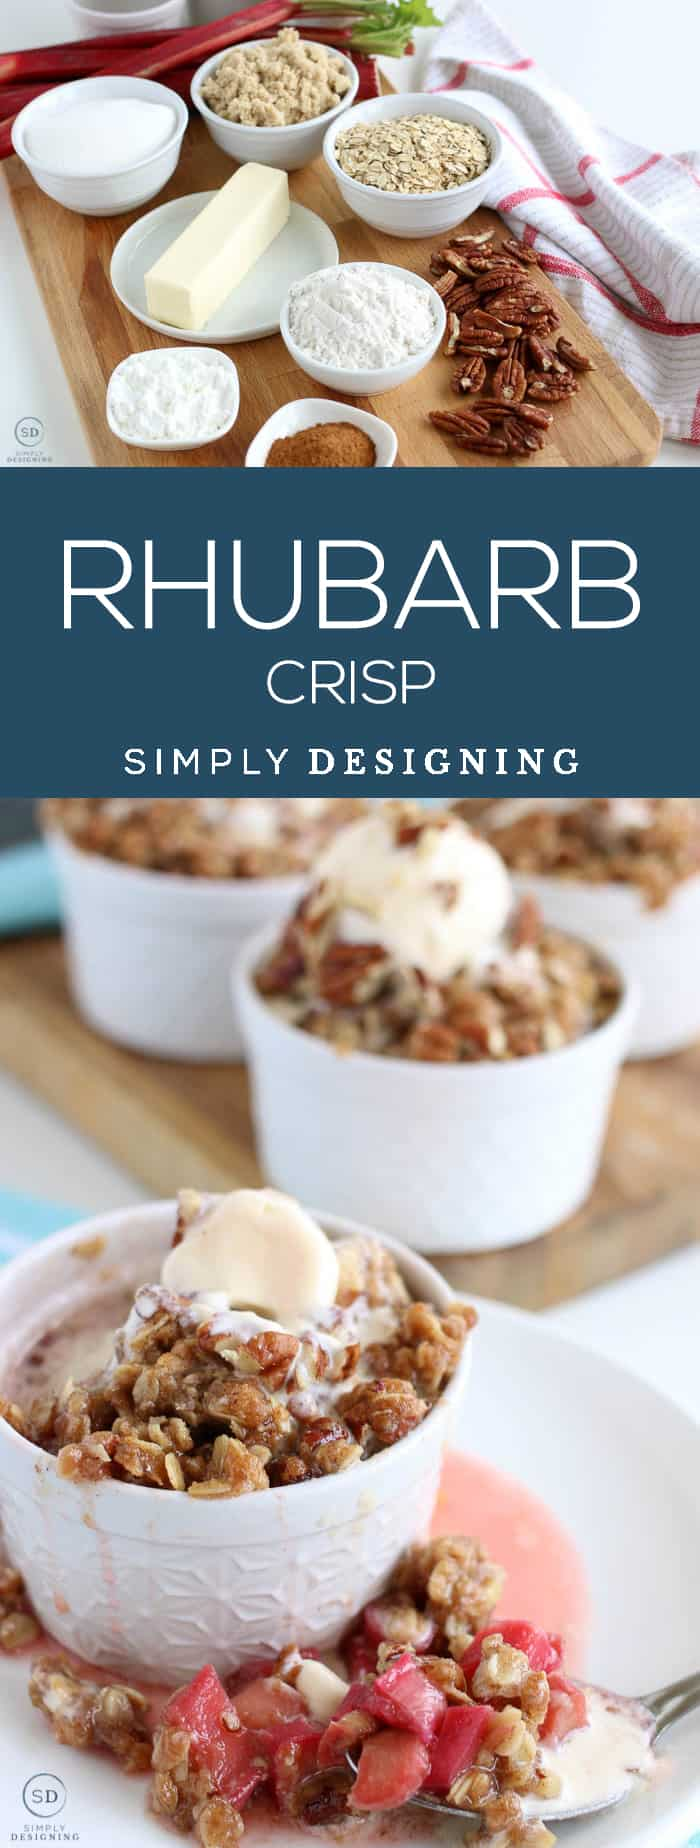 Rhubarb Crisp - This rhubarb crisp recipe is delicious forgiving and so simple - You can even adapt these into a rhubarb crisp bars recipe